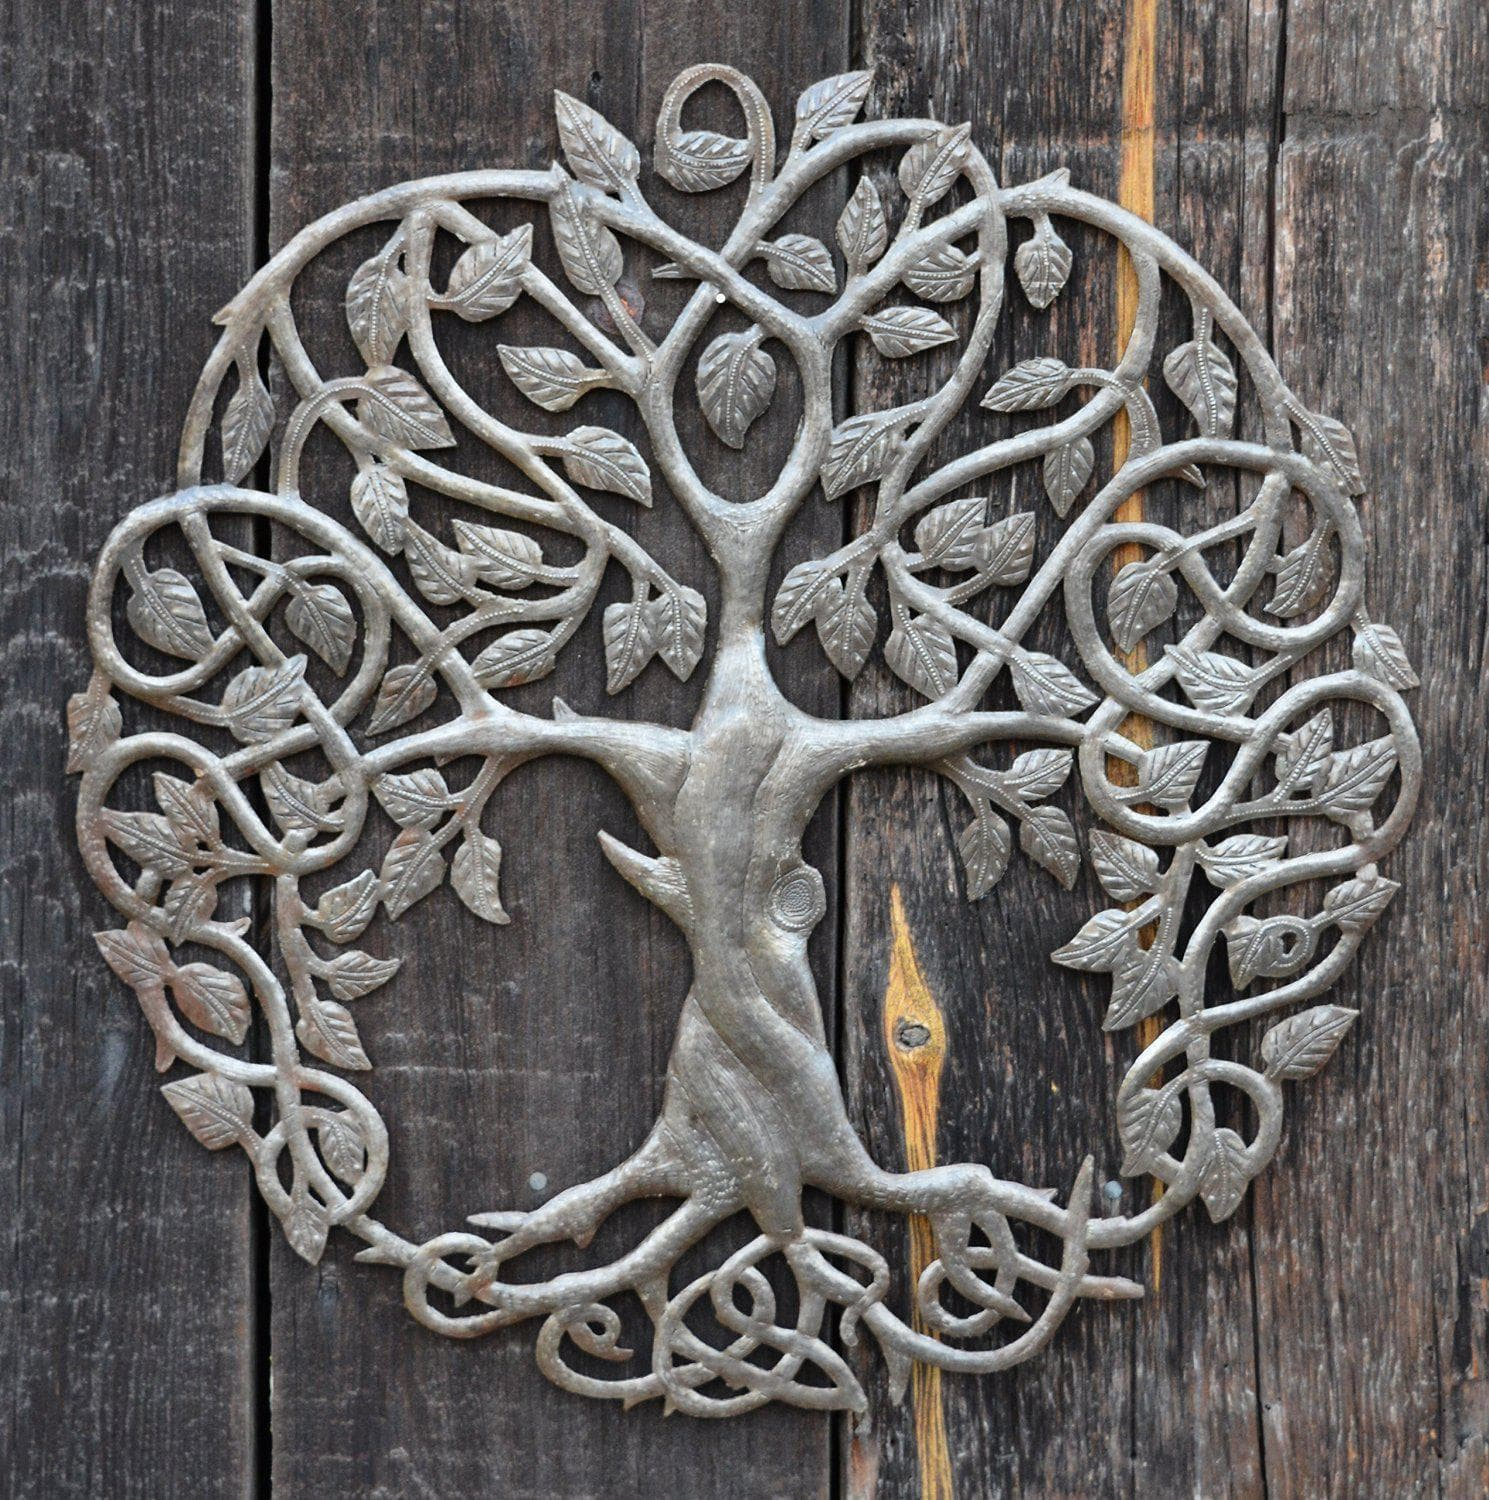 Celtic Tree of Life Handmade Metal Wall Art Ancient Treasures Ancientreasures Viking Odin Thor Mjolnir Celtic Ancient Egypt Norse Norse Mythology